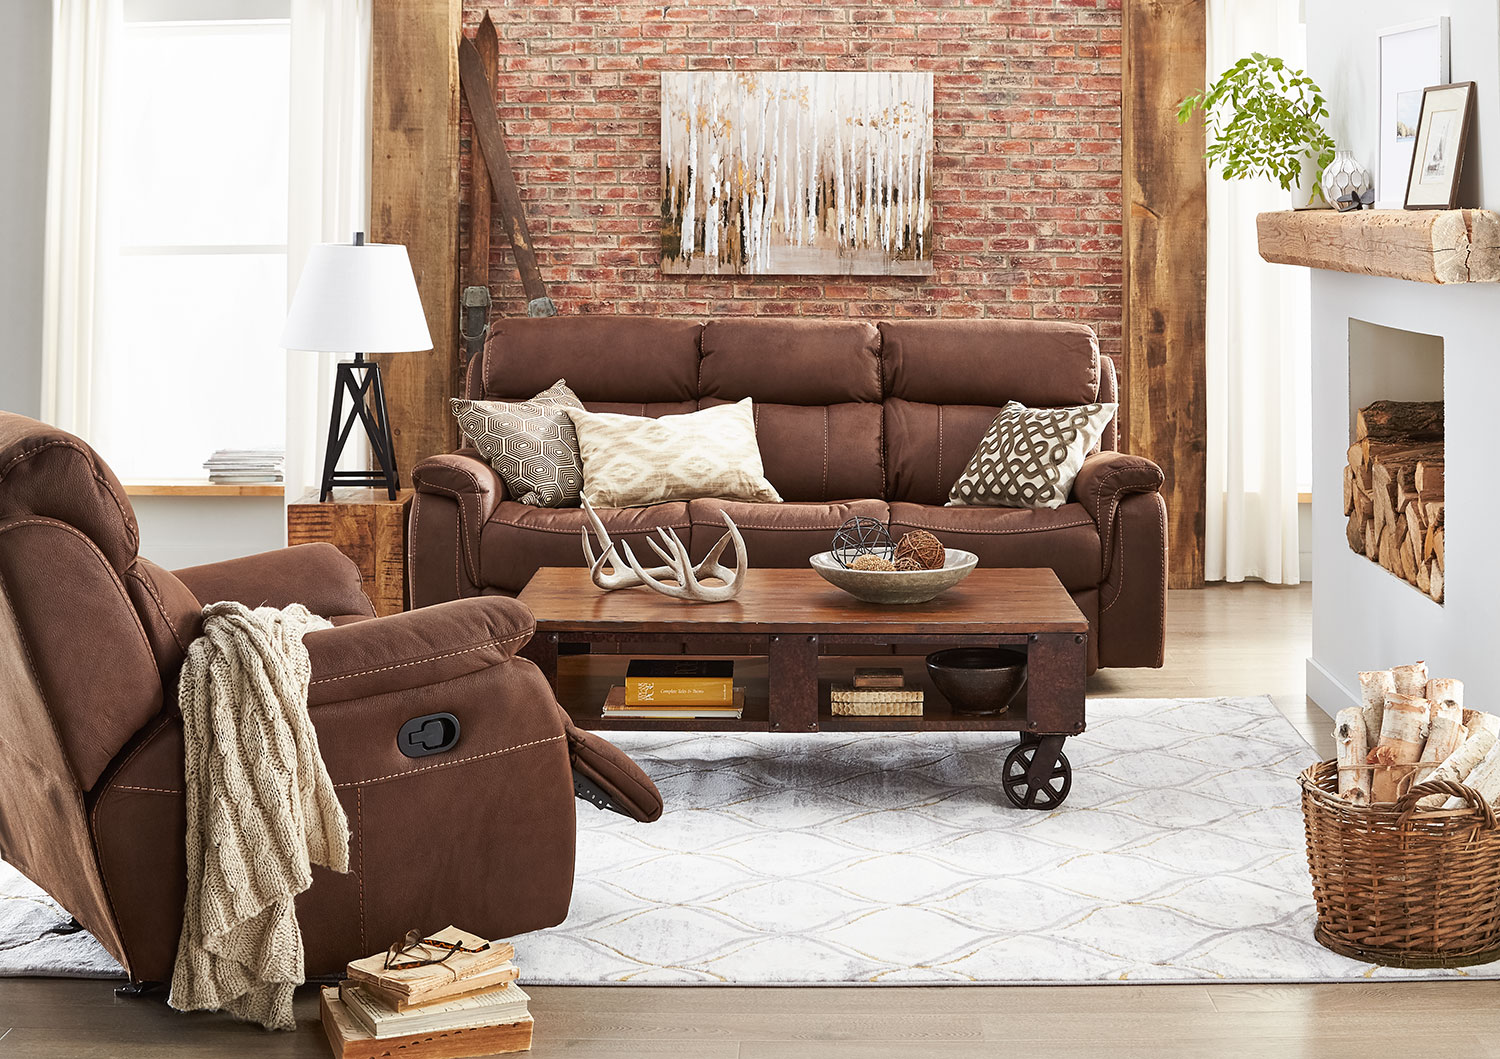 Morrow Reclining Sofa and Recliner Set - Saddle Brown